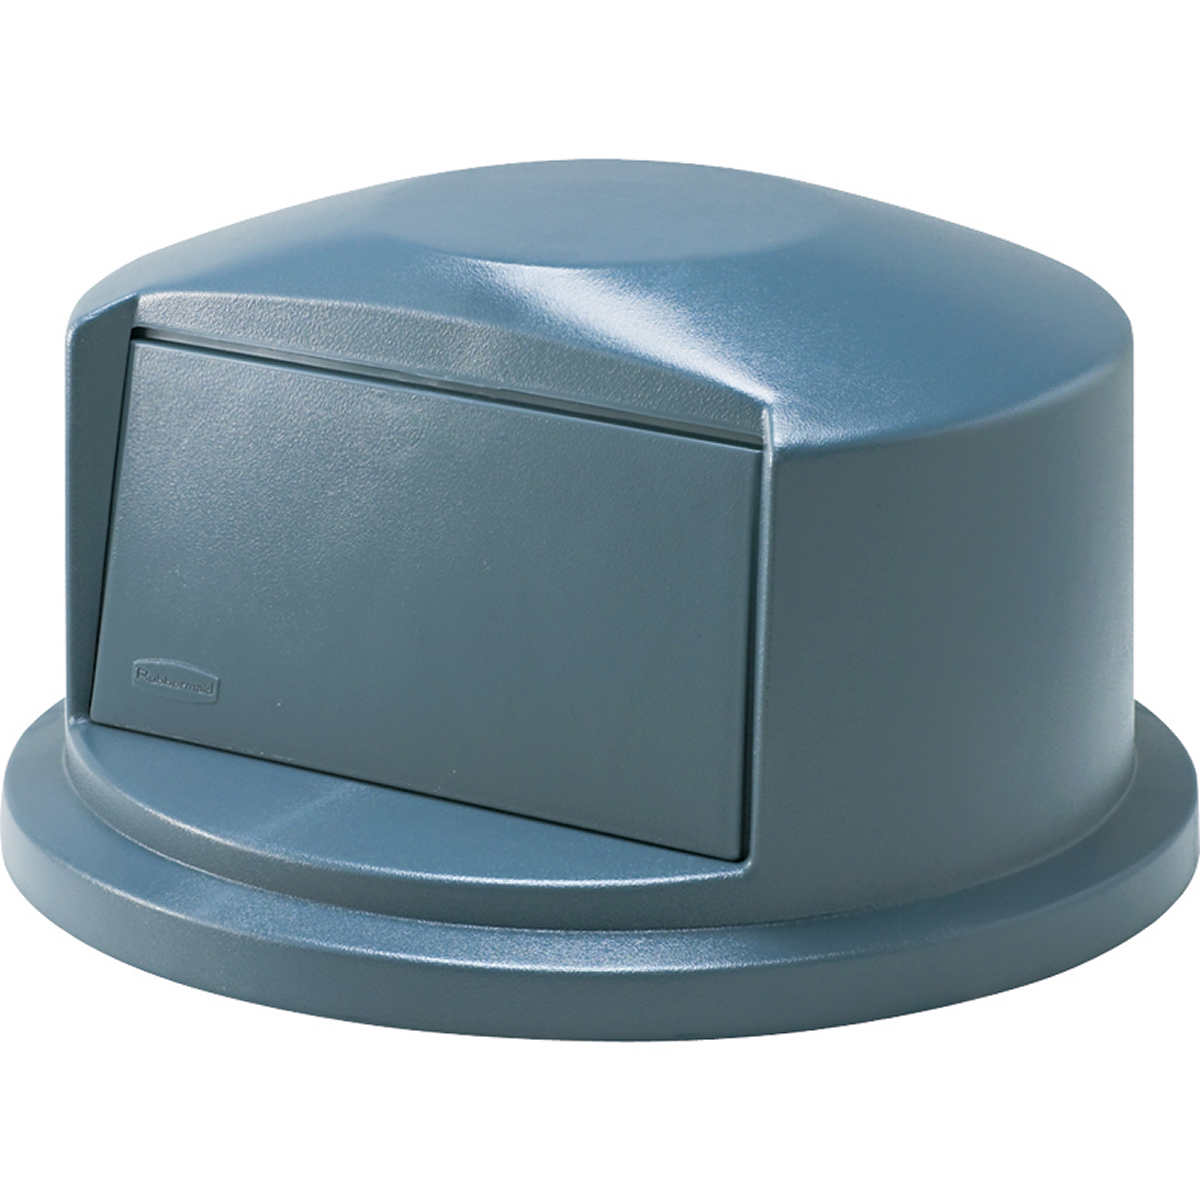 Rubbermaid Brute Dome Lid Of 32 Gal Trash Can